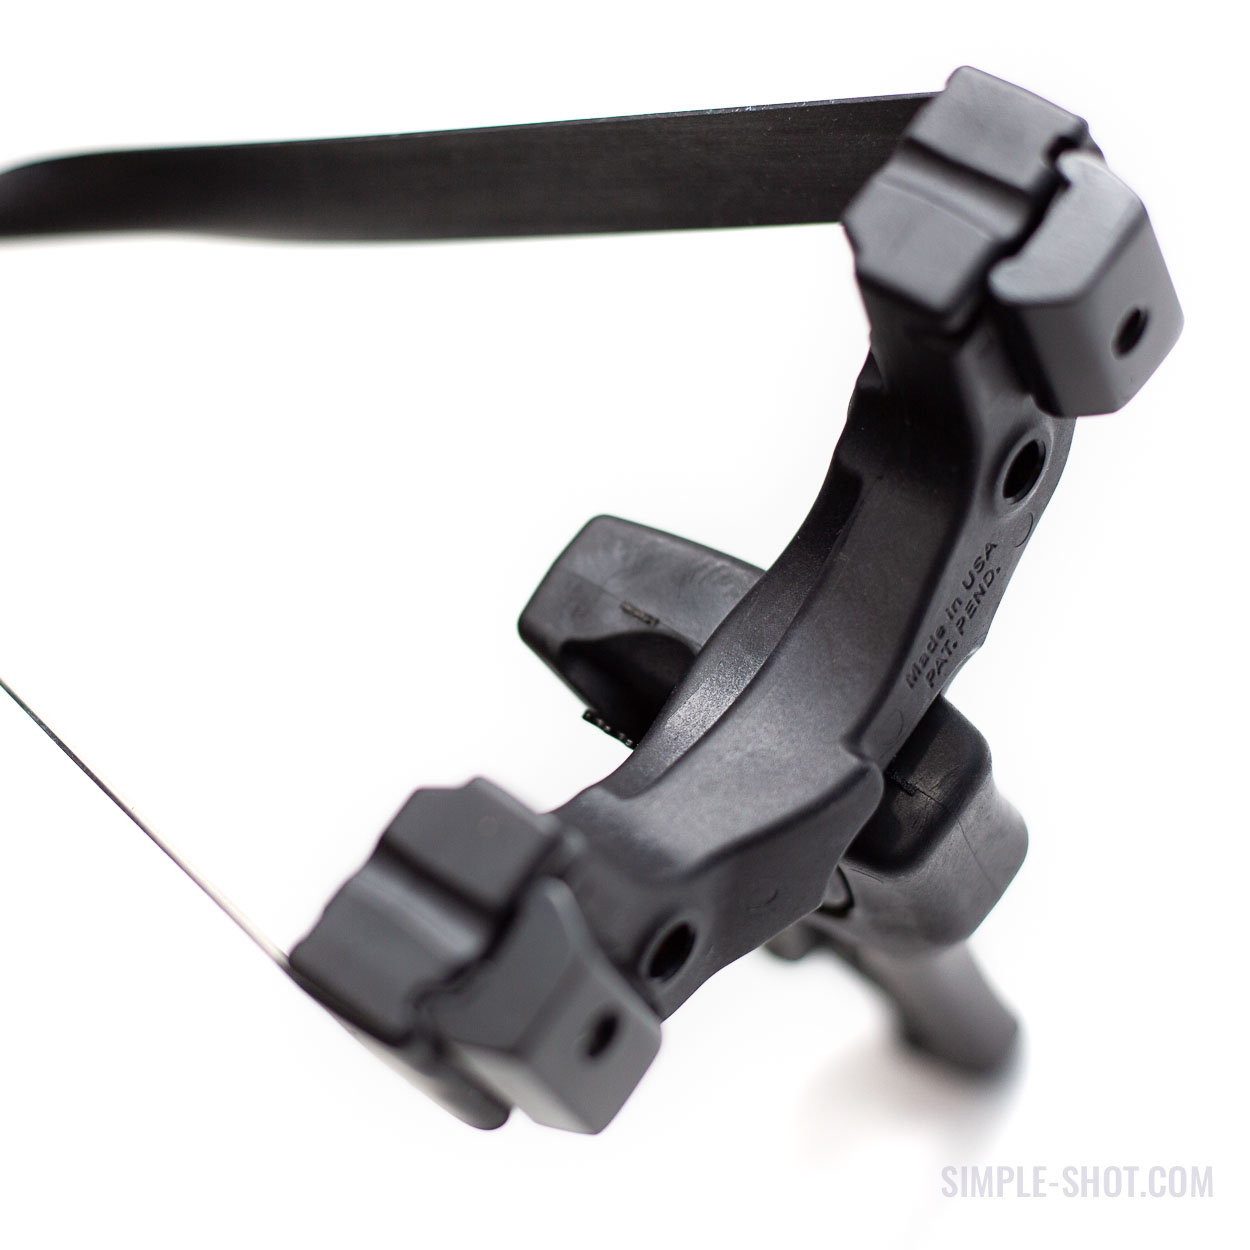 The Powerful Hammer Slingbow head in black with wrist brace